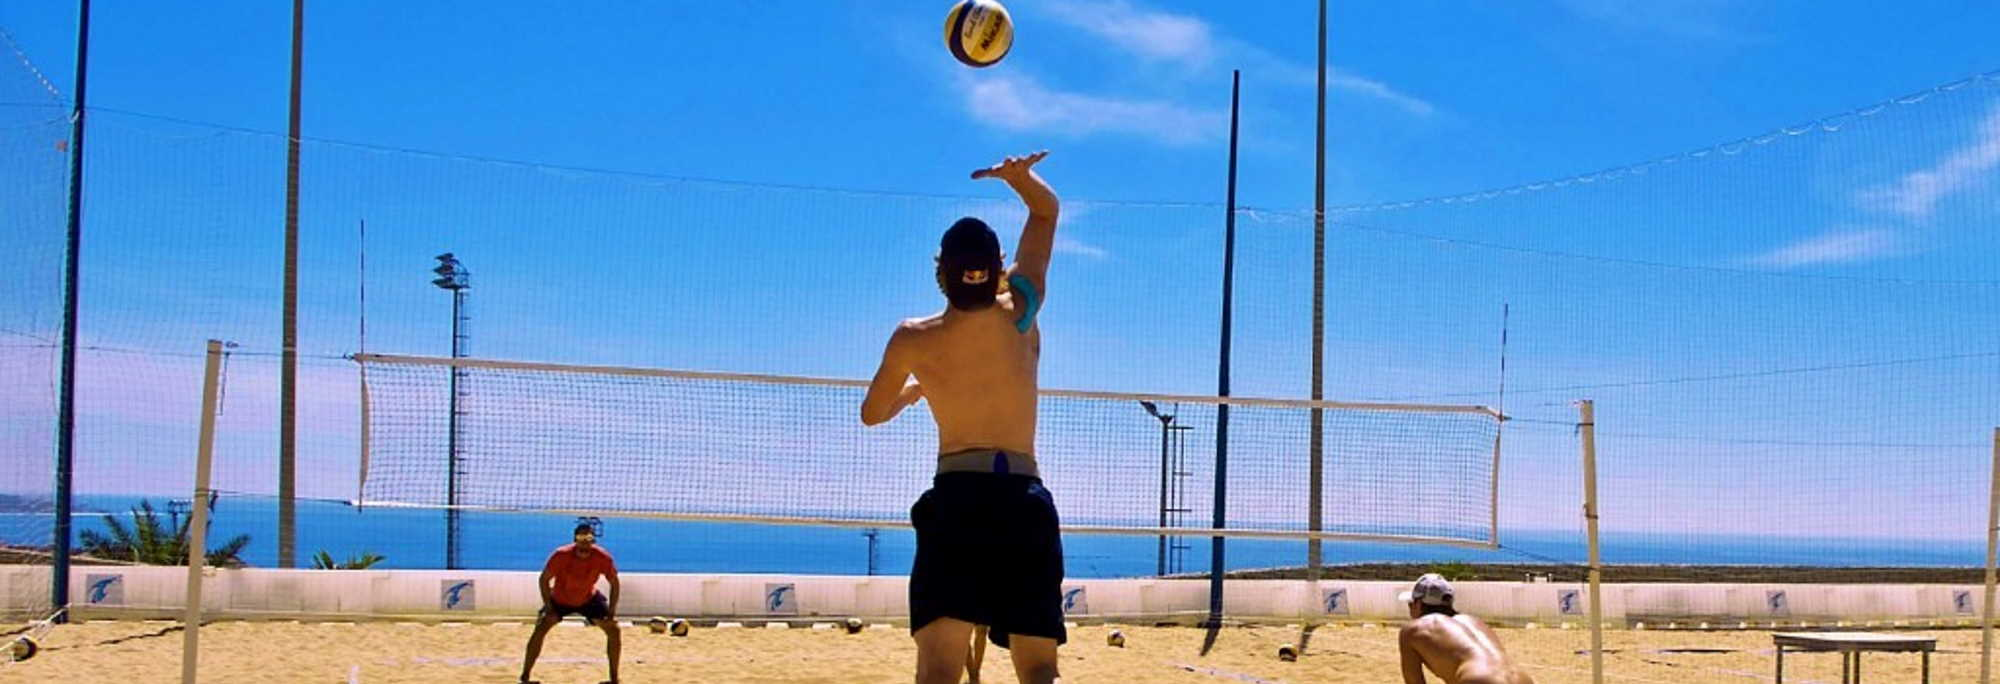 Professional training for beach volleyball in Spain at the Tenerife Top Training sports centre